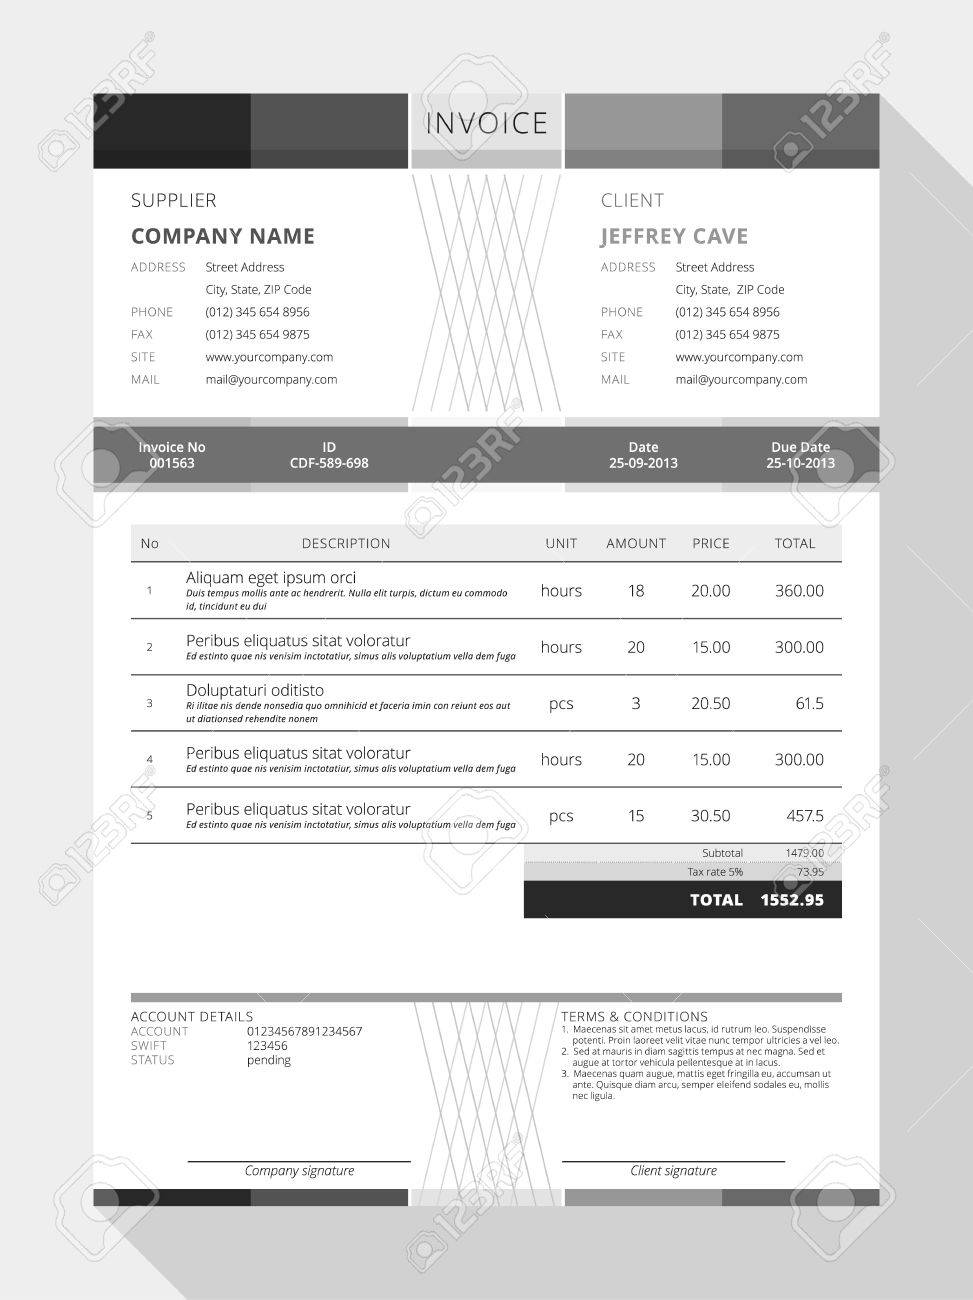 Barneybonesus  Fascinating Design An Invoice  Professional Graphic Design Invoice  With Exquisite Vector Customizable Invoice Form Template Design Vector   Design An Invoice With Awesome Free Printable Cash Receipt Also Rental Car Receipt In Addition Crock Pot Receipts And Contractor Receipt Template As Well As Create Your Own Receipt Additionally Broward County Local Business Tax Receipt From Happytomco With Barneybonesus  Exquisite Design An Invoice  Professional Graphic Design Invoice  With Awesome Vector Customizable Invoice Form Template Design Vector   Design An Invoice And Fascinating Free Printable Cash Receipt Also Rental Car Receipt In Addition Crock Pot Receipts From Happytomco